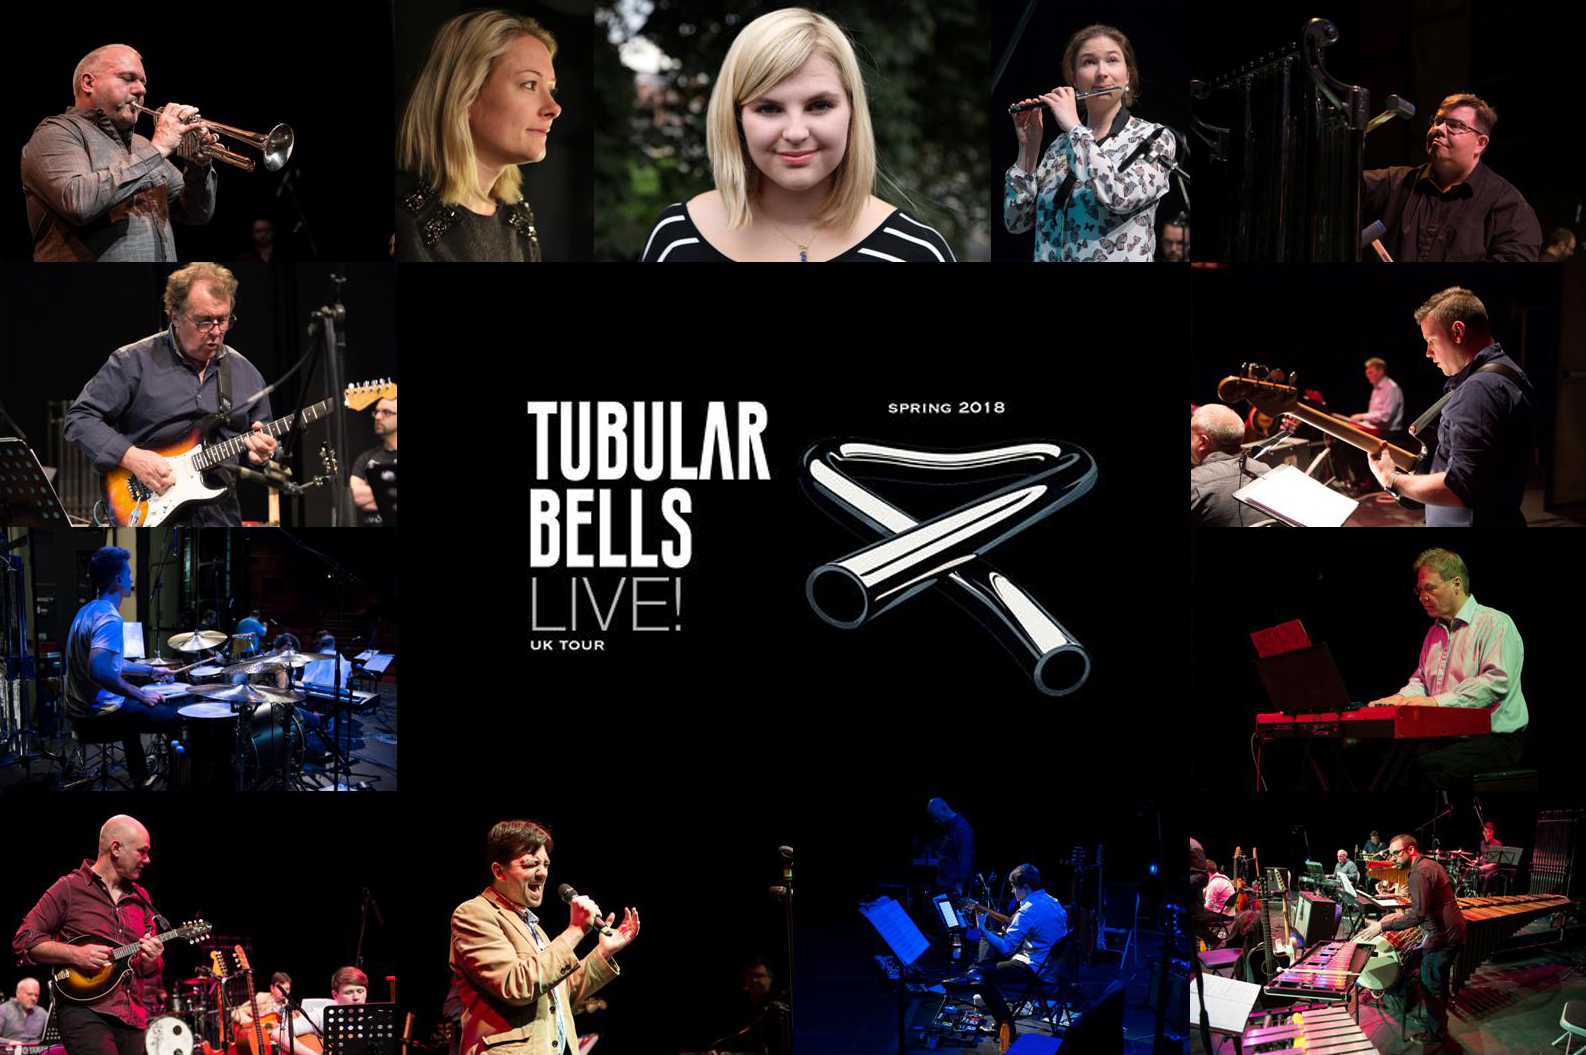 Tubular Bells montage new 4